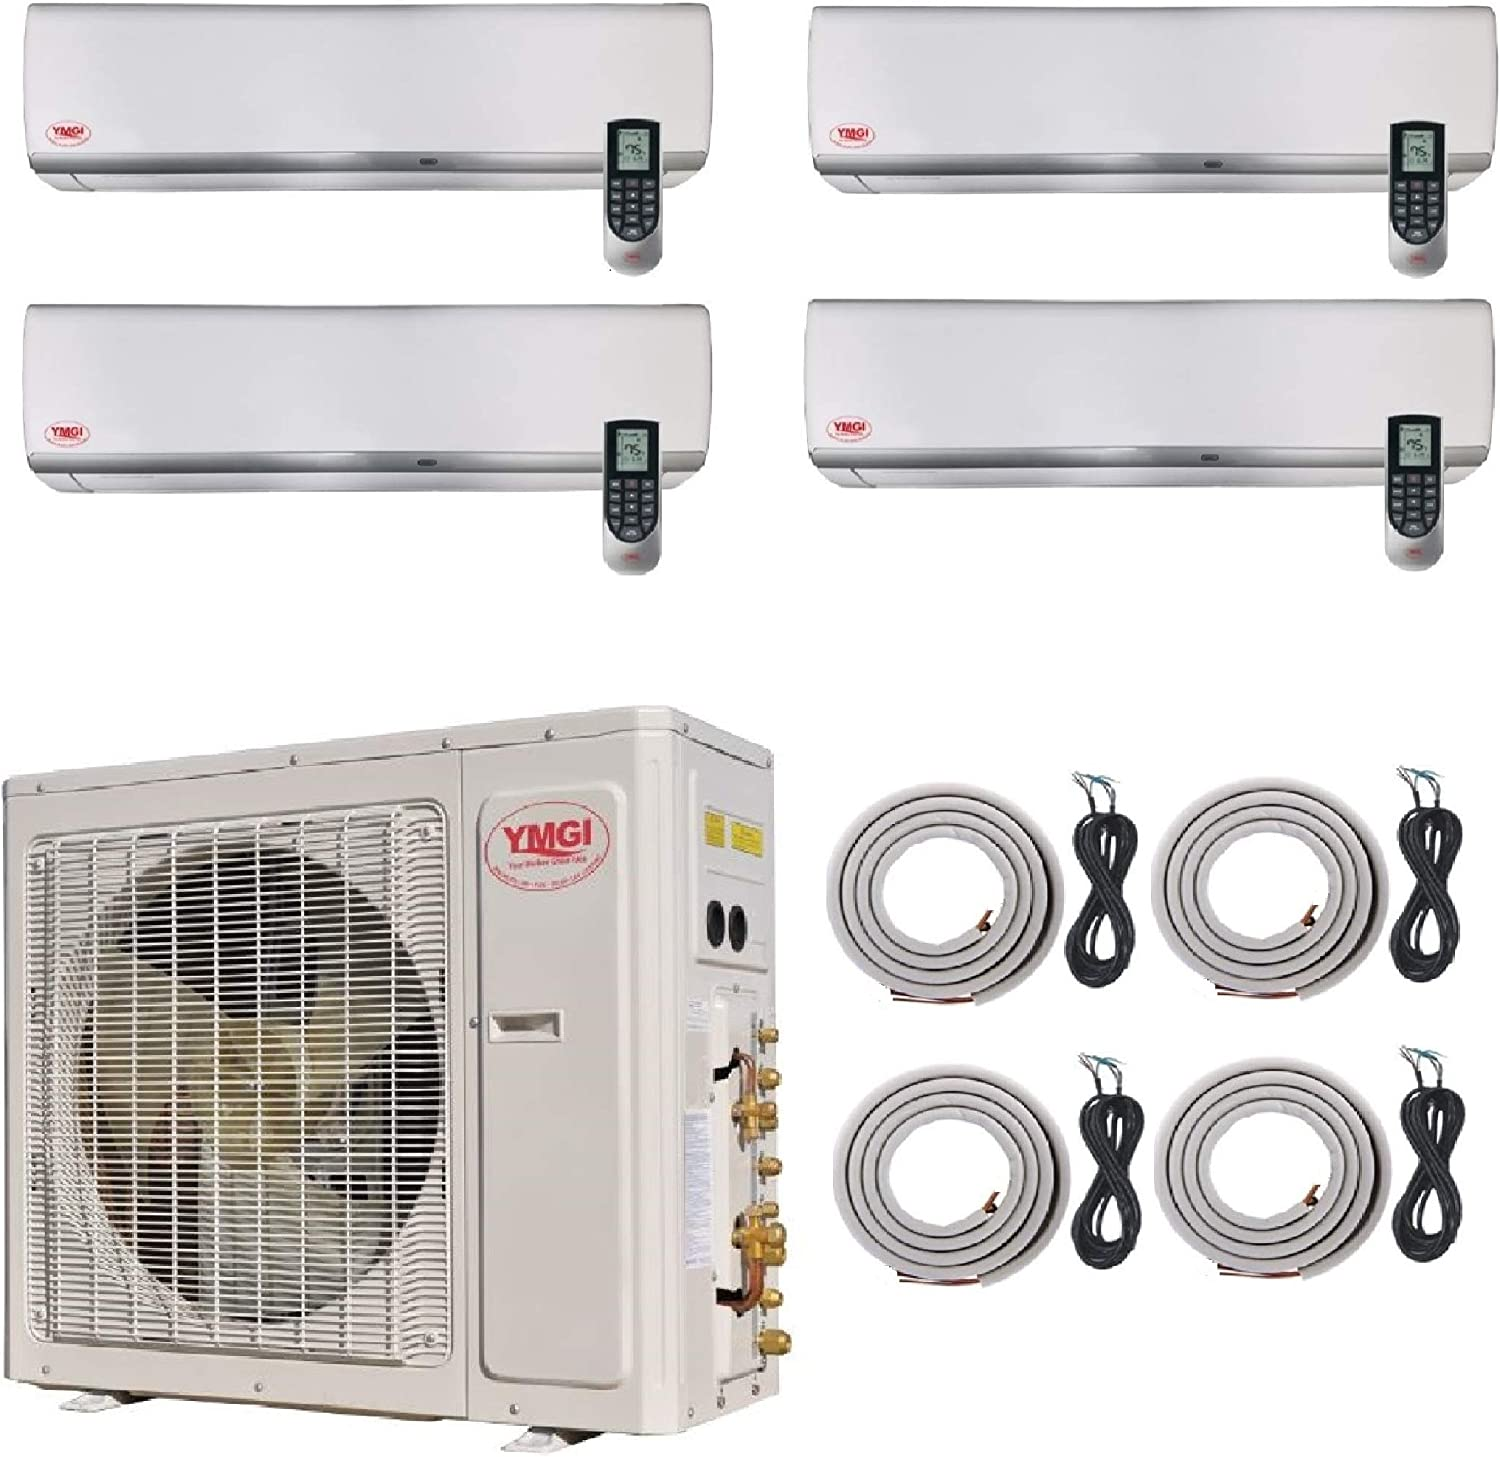 YMGI Four Zone 54000 BTU 4 Zone 9000 9000 18000 18000 Wall Mount Ductless Mini Split Air Conditioner with Heat Pump with 25 Ft Lineset Installation Kits